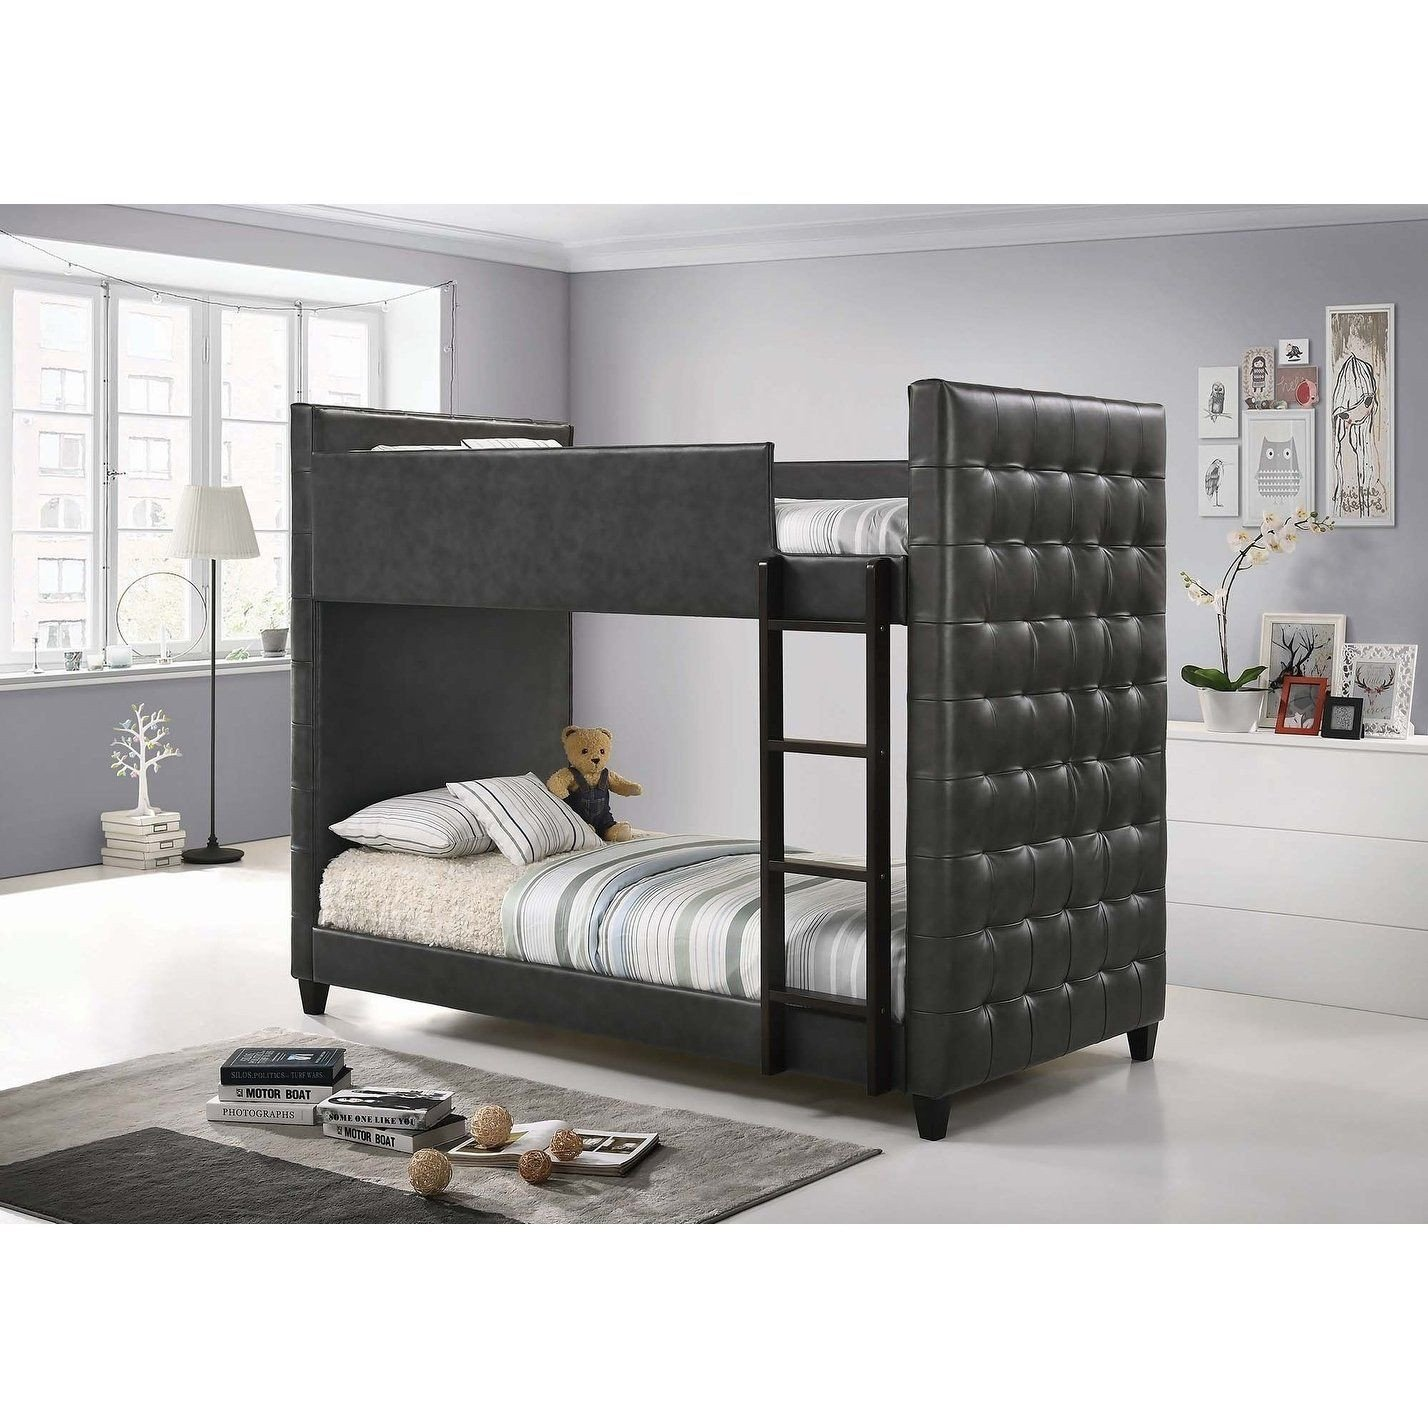 Black Twin Bedroom Set New Helms Grey and Black Upholstered Twin Over Twin Bunk Bed